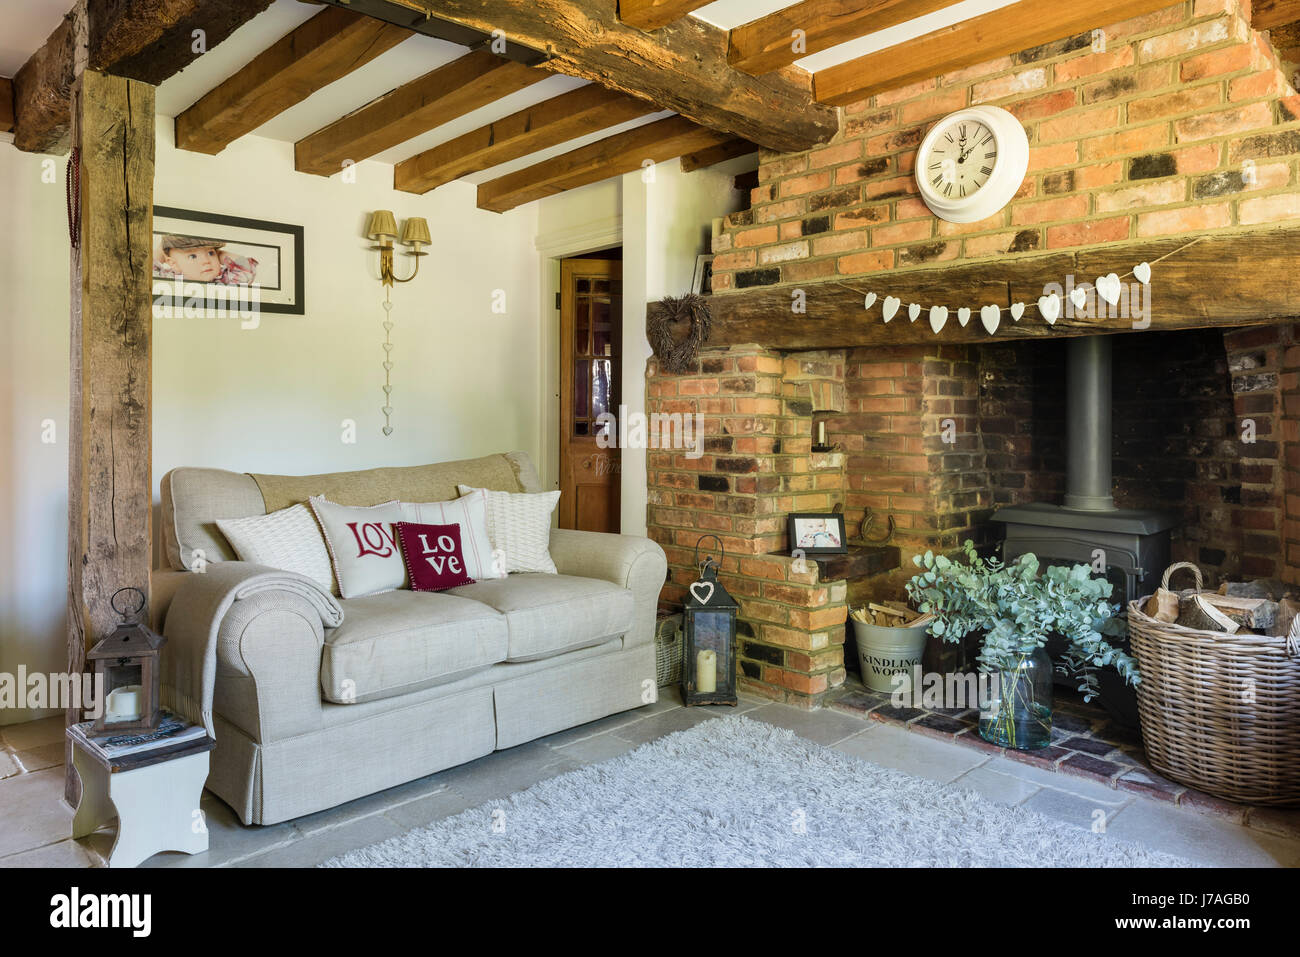 Cosy Sitting Room With Inglenook Fireplace Exposed Brick Wall And Wood Beamed Ceiling The Cream Sofa Is From Laura Ashley Rug John Lewi